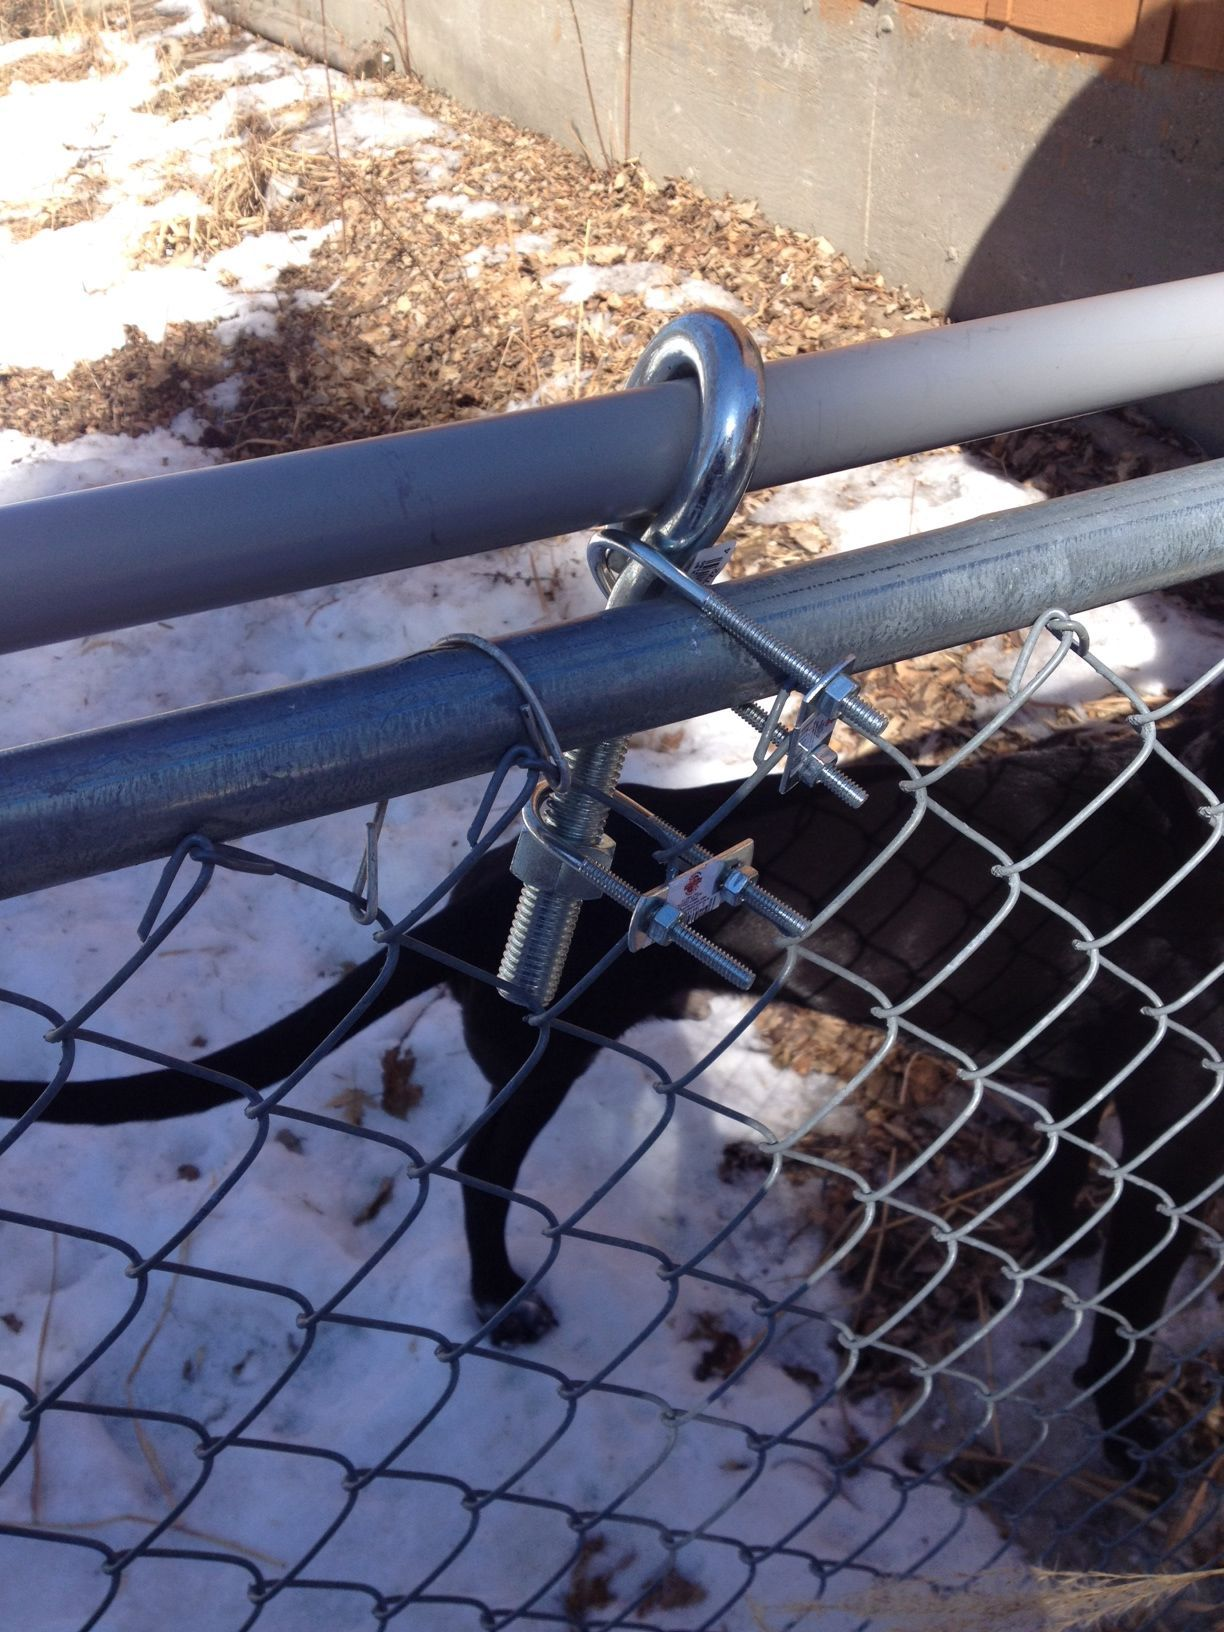 Fence Wire Roller | Diy Dog Proof Fence Topper Coyote Roller All You Need For A 6